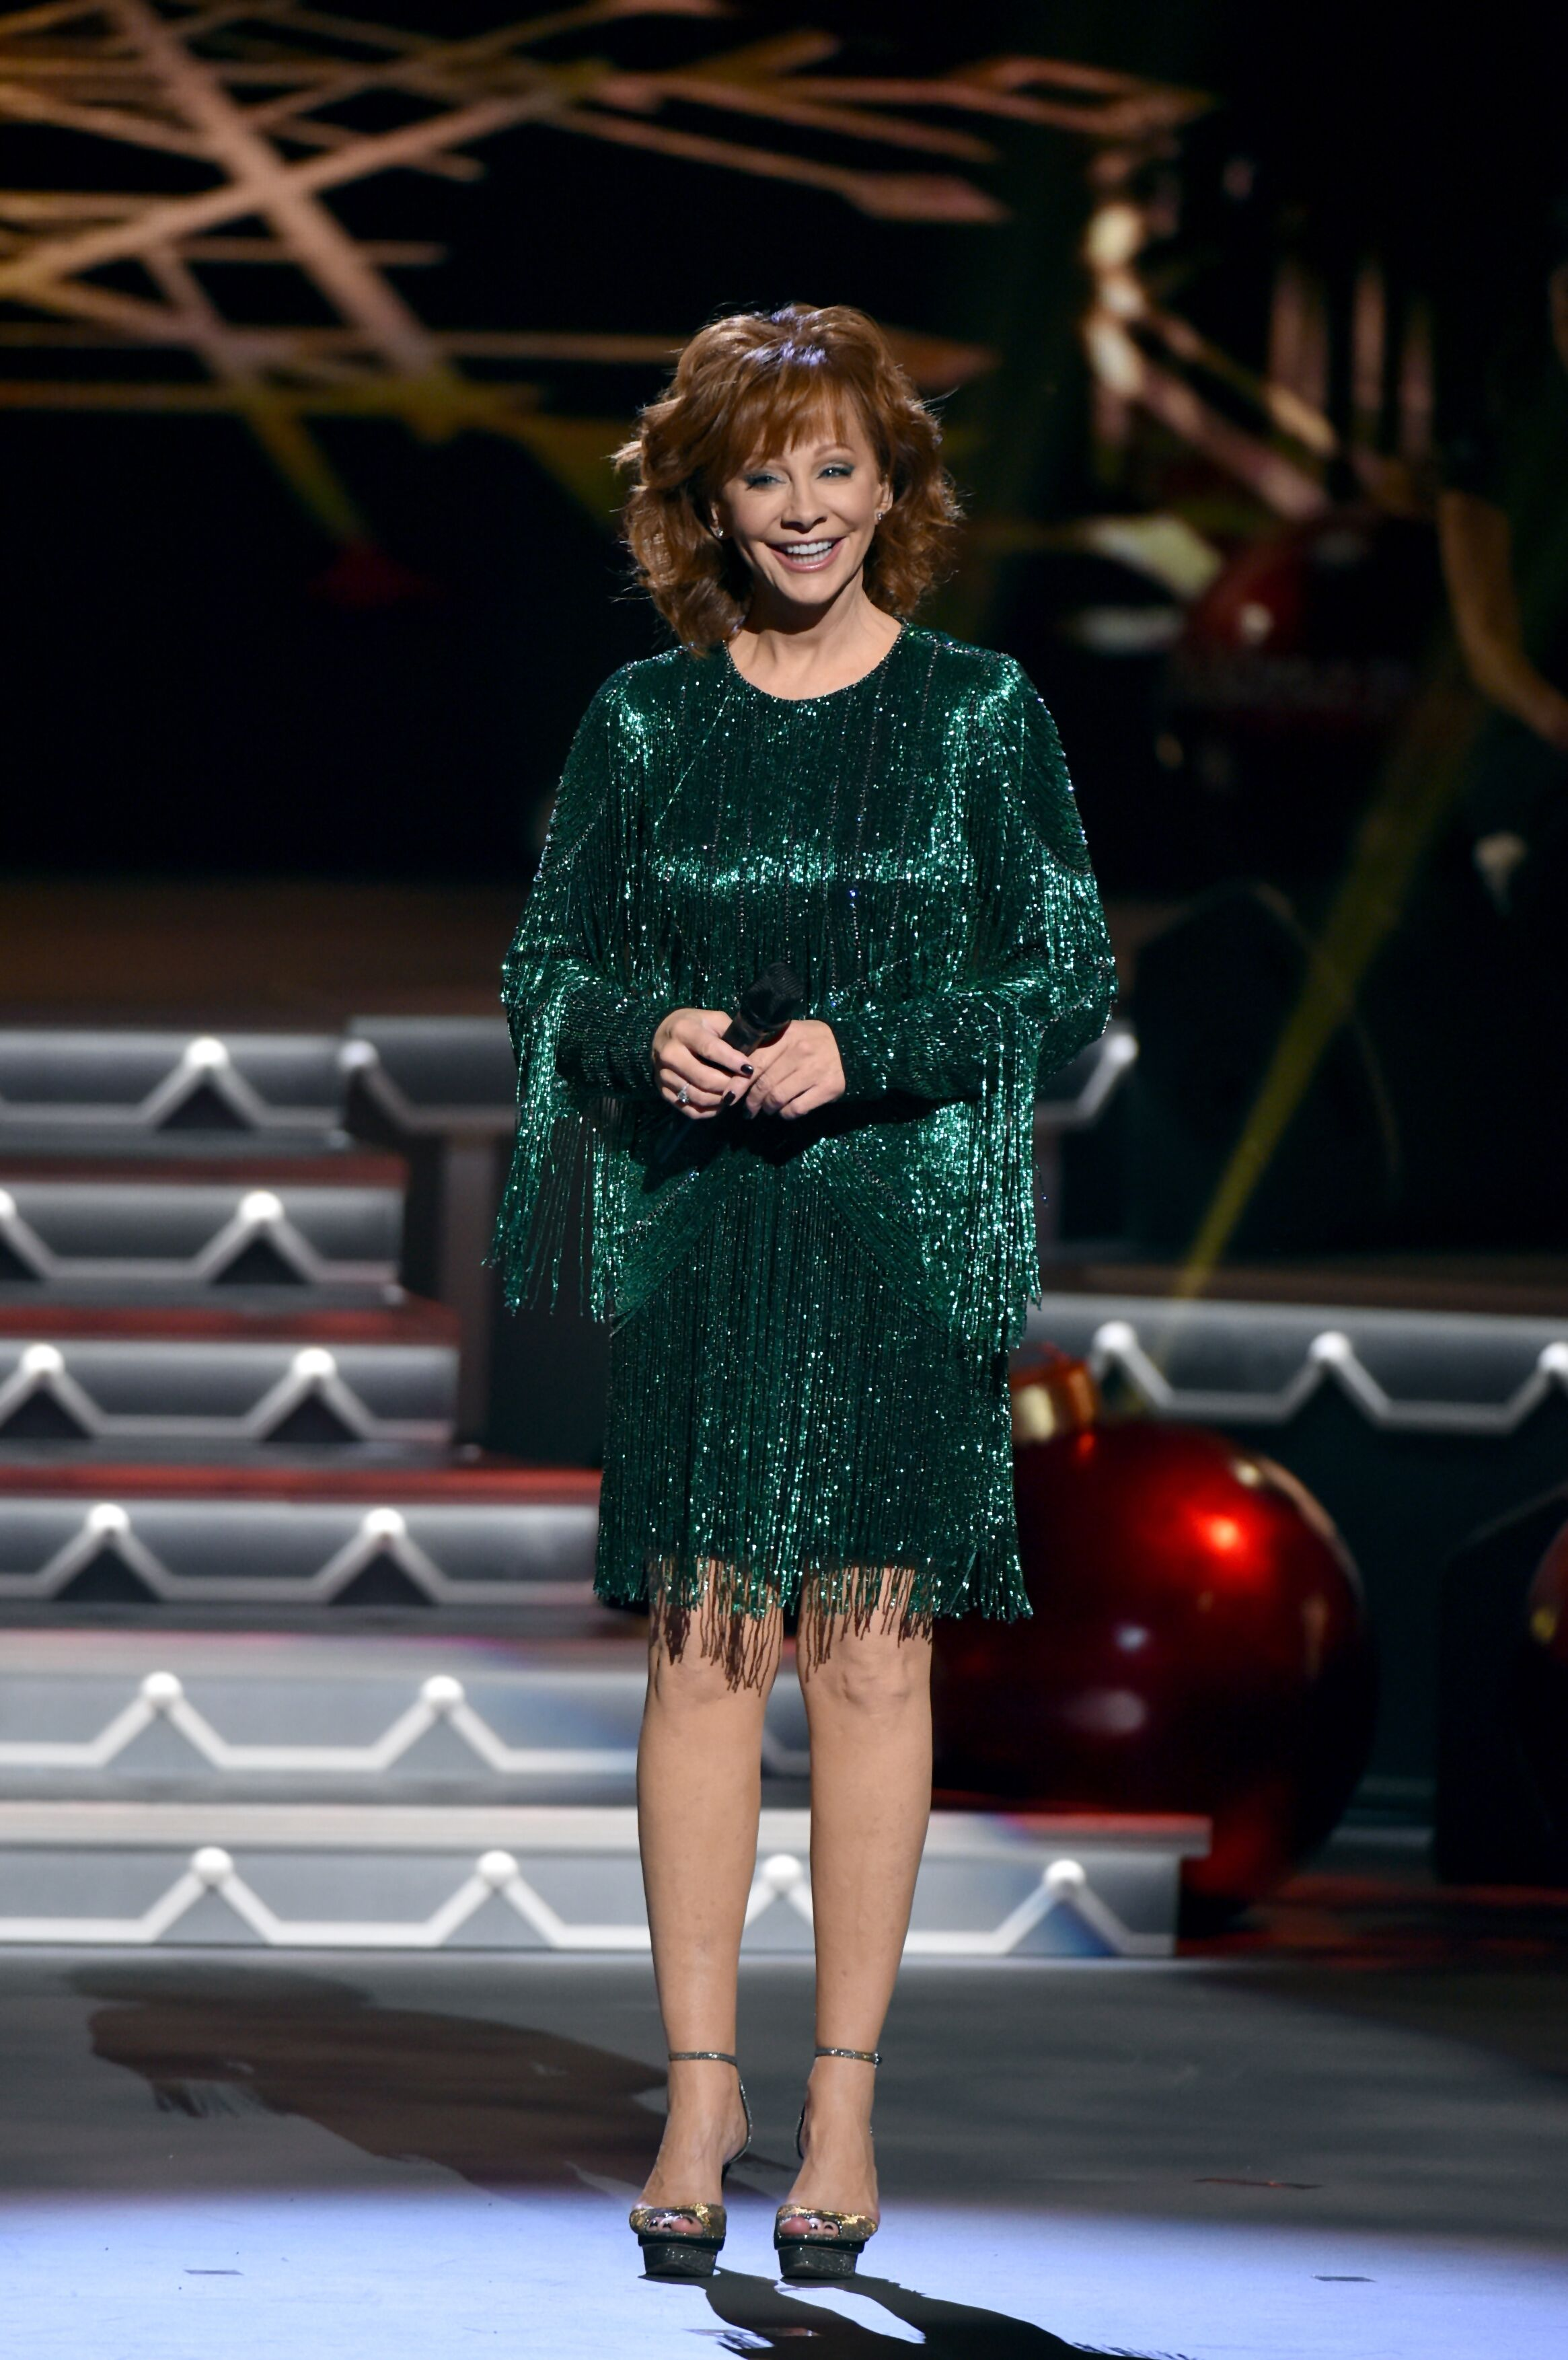 Reba McEntire performs onstage for CMA 2017 Country Christmas at The Grand Ole Opry  | Getty Images